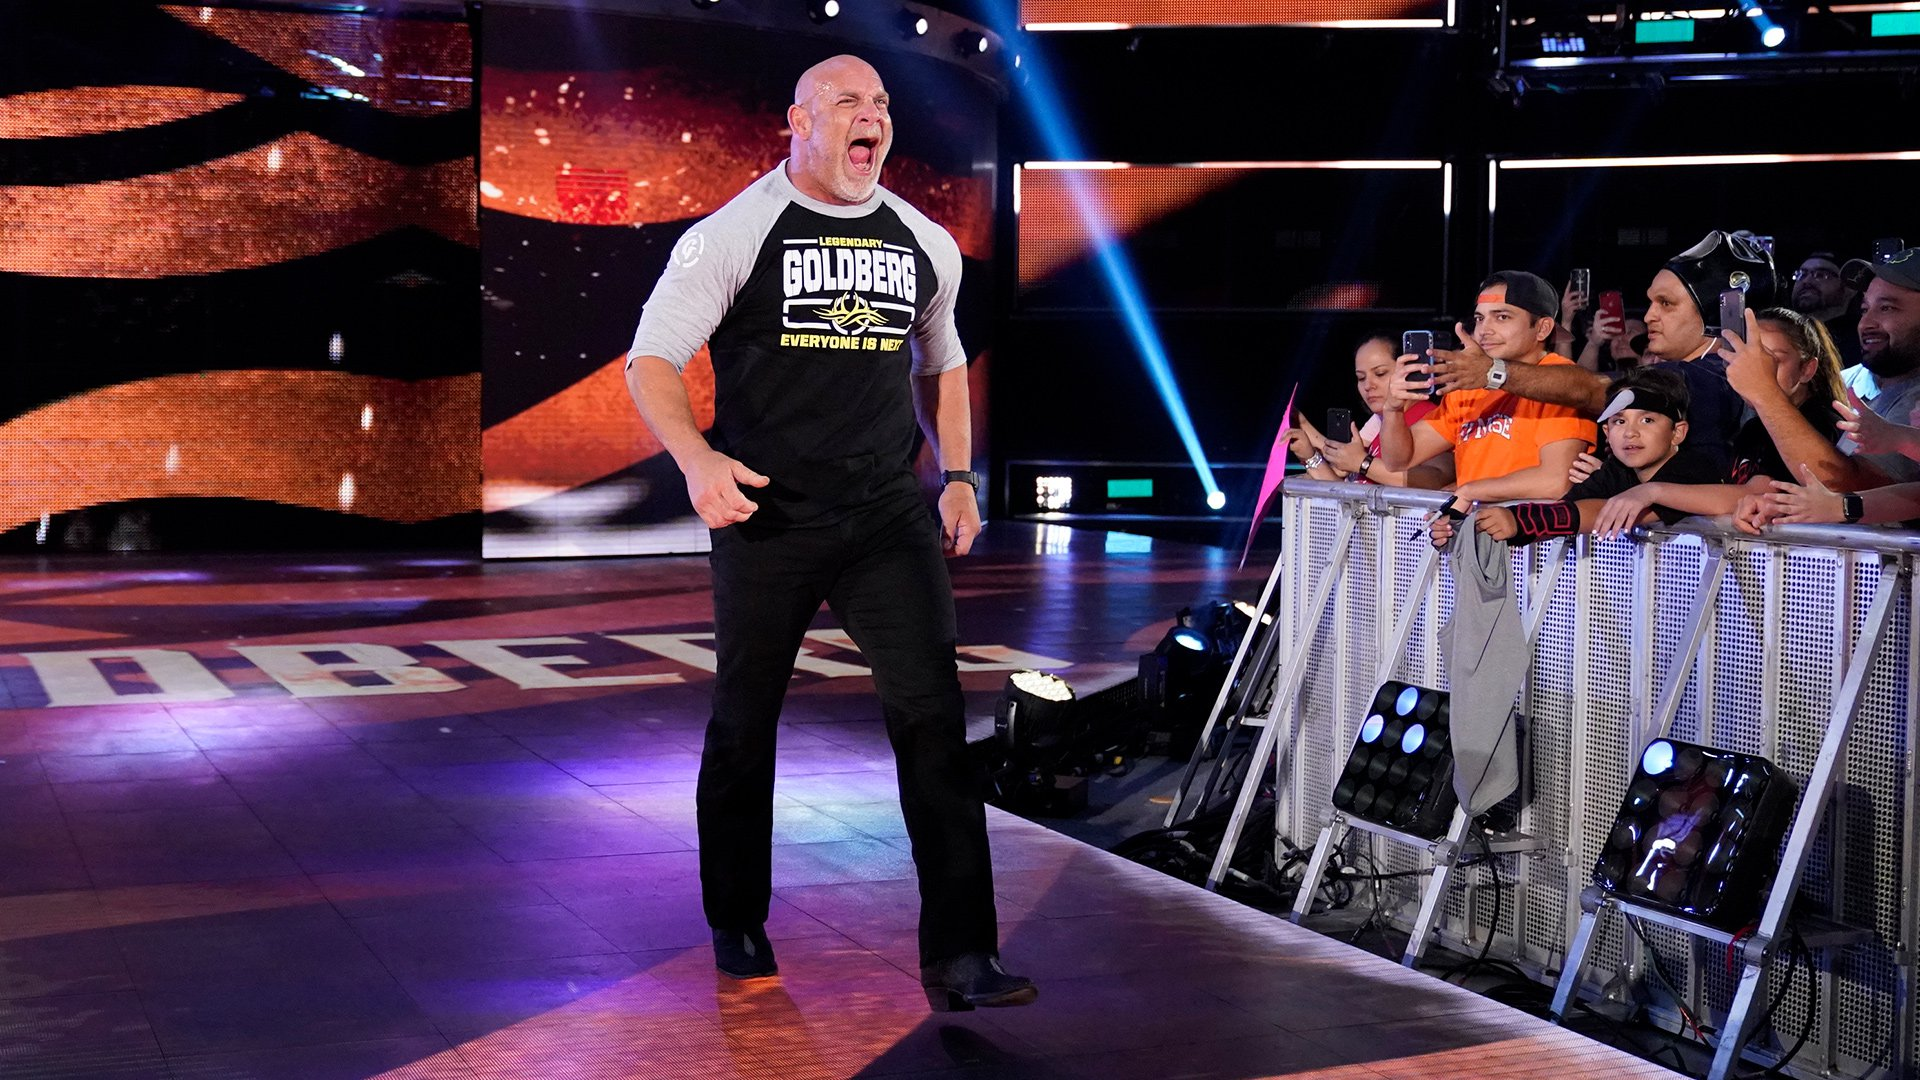 WWE SummerSlam 2019 rumors: Roman Reigns whodunnit, Goldberg's return and more of the top chatter